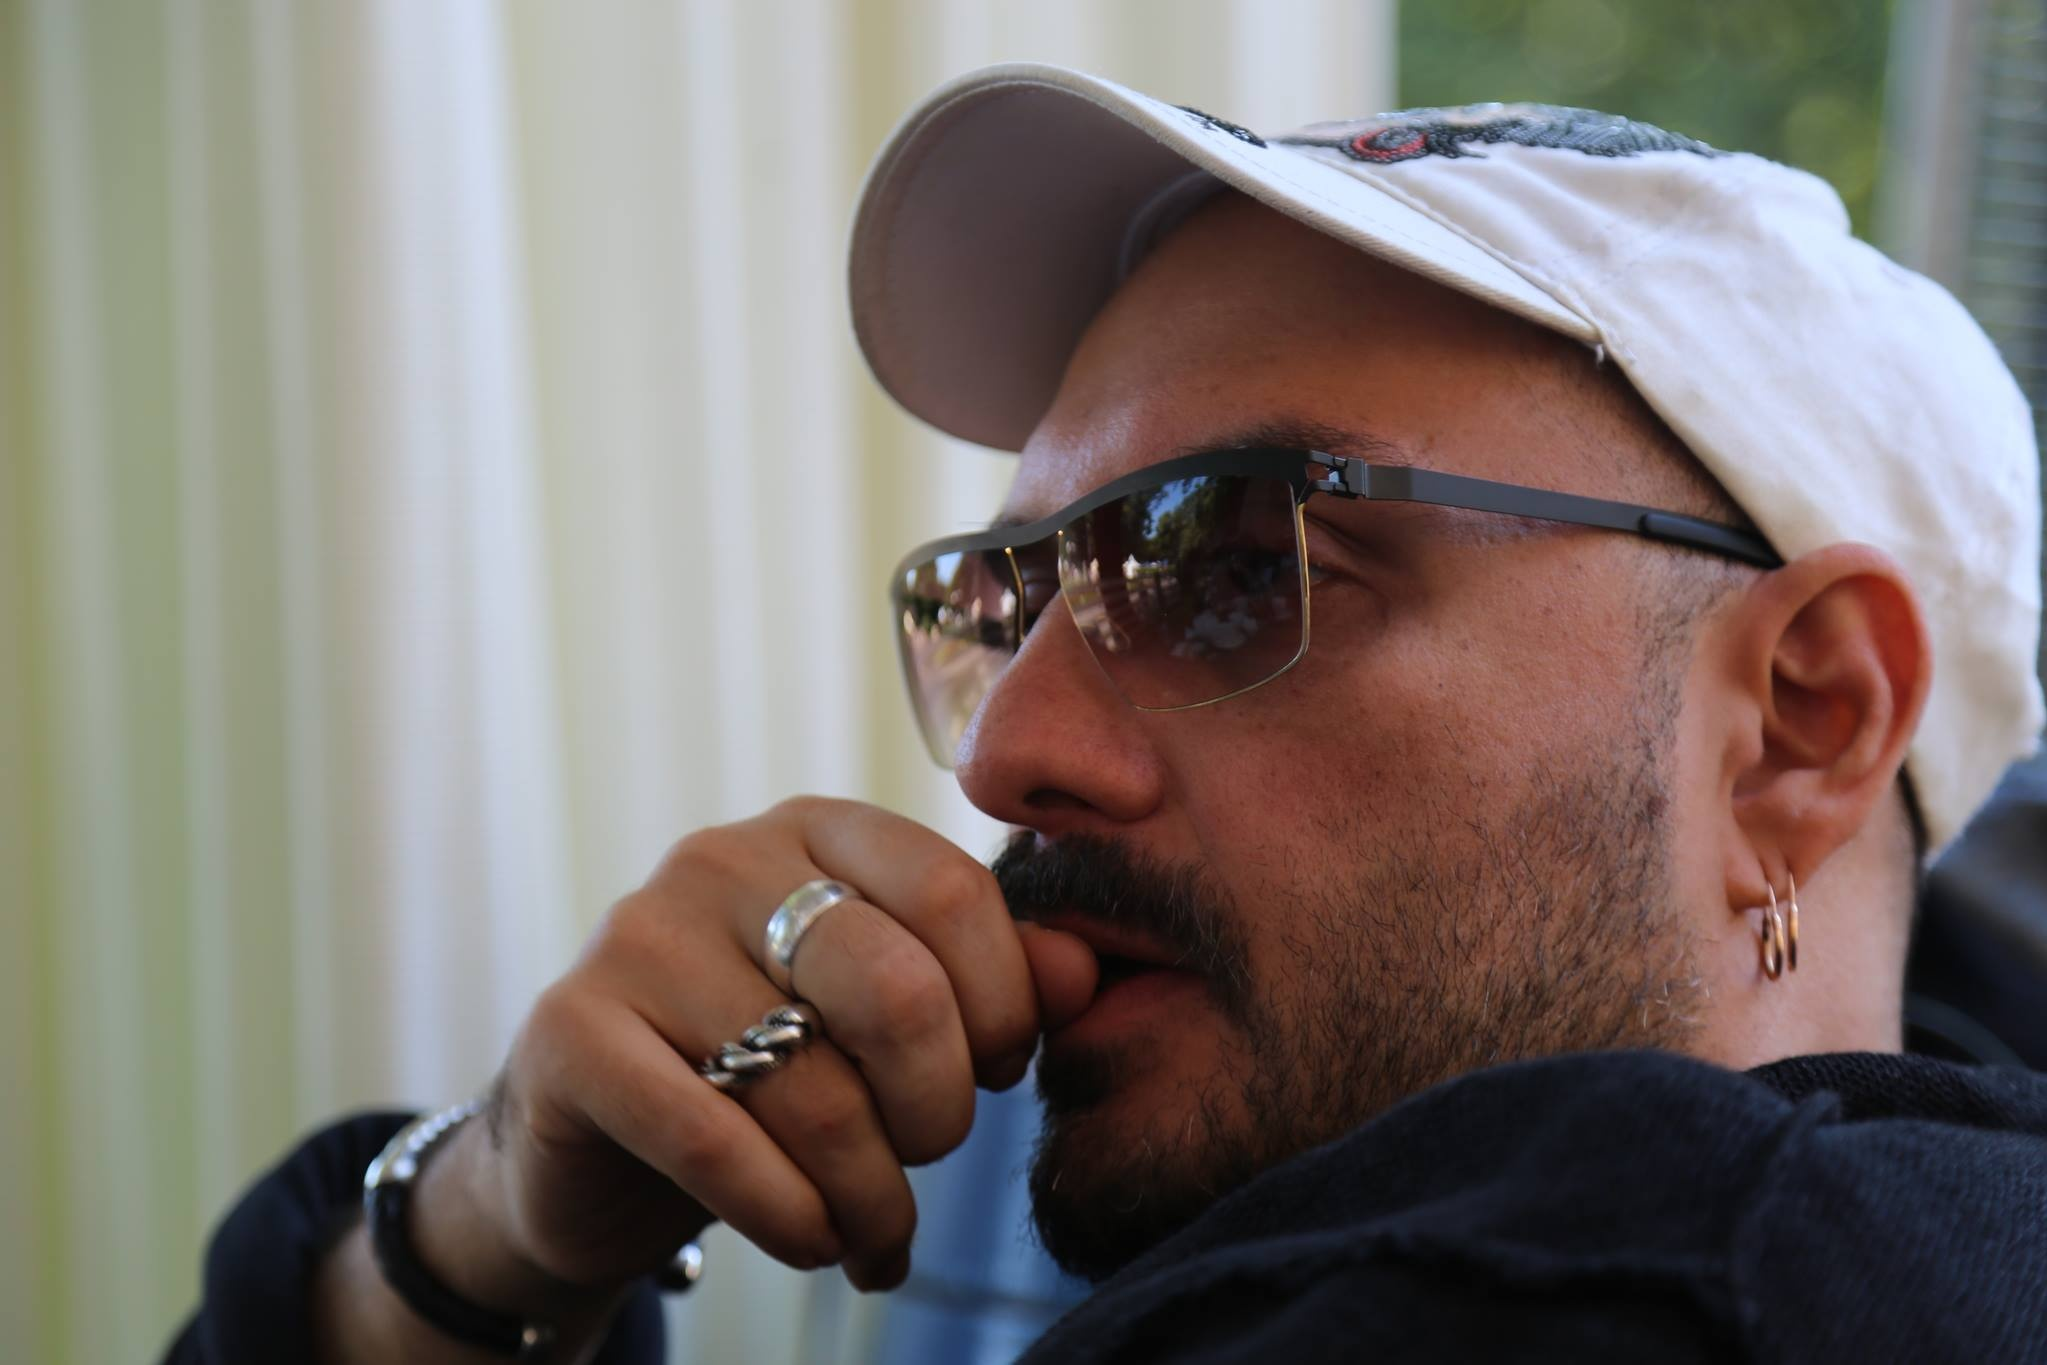 Russian court finds director Serebrennikov guilty of fraud - Film - Arts & Culture